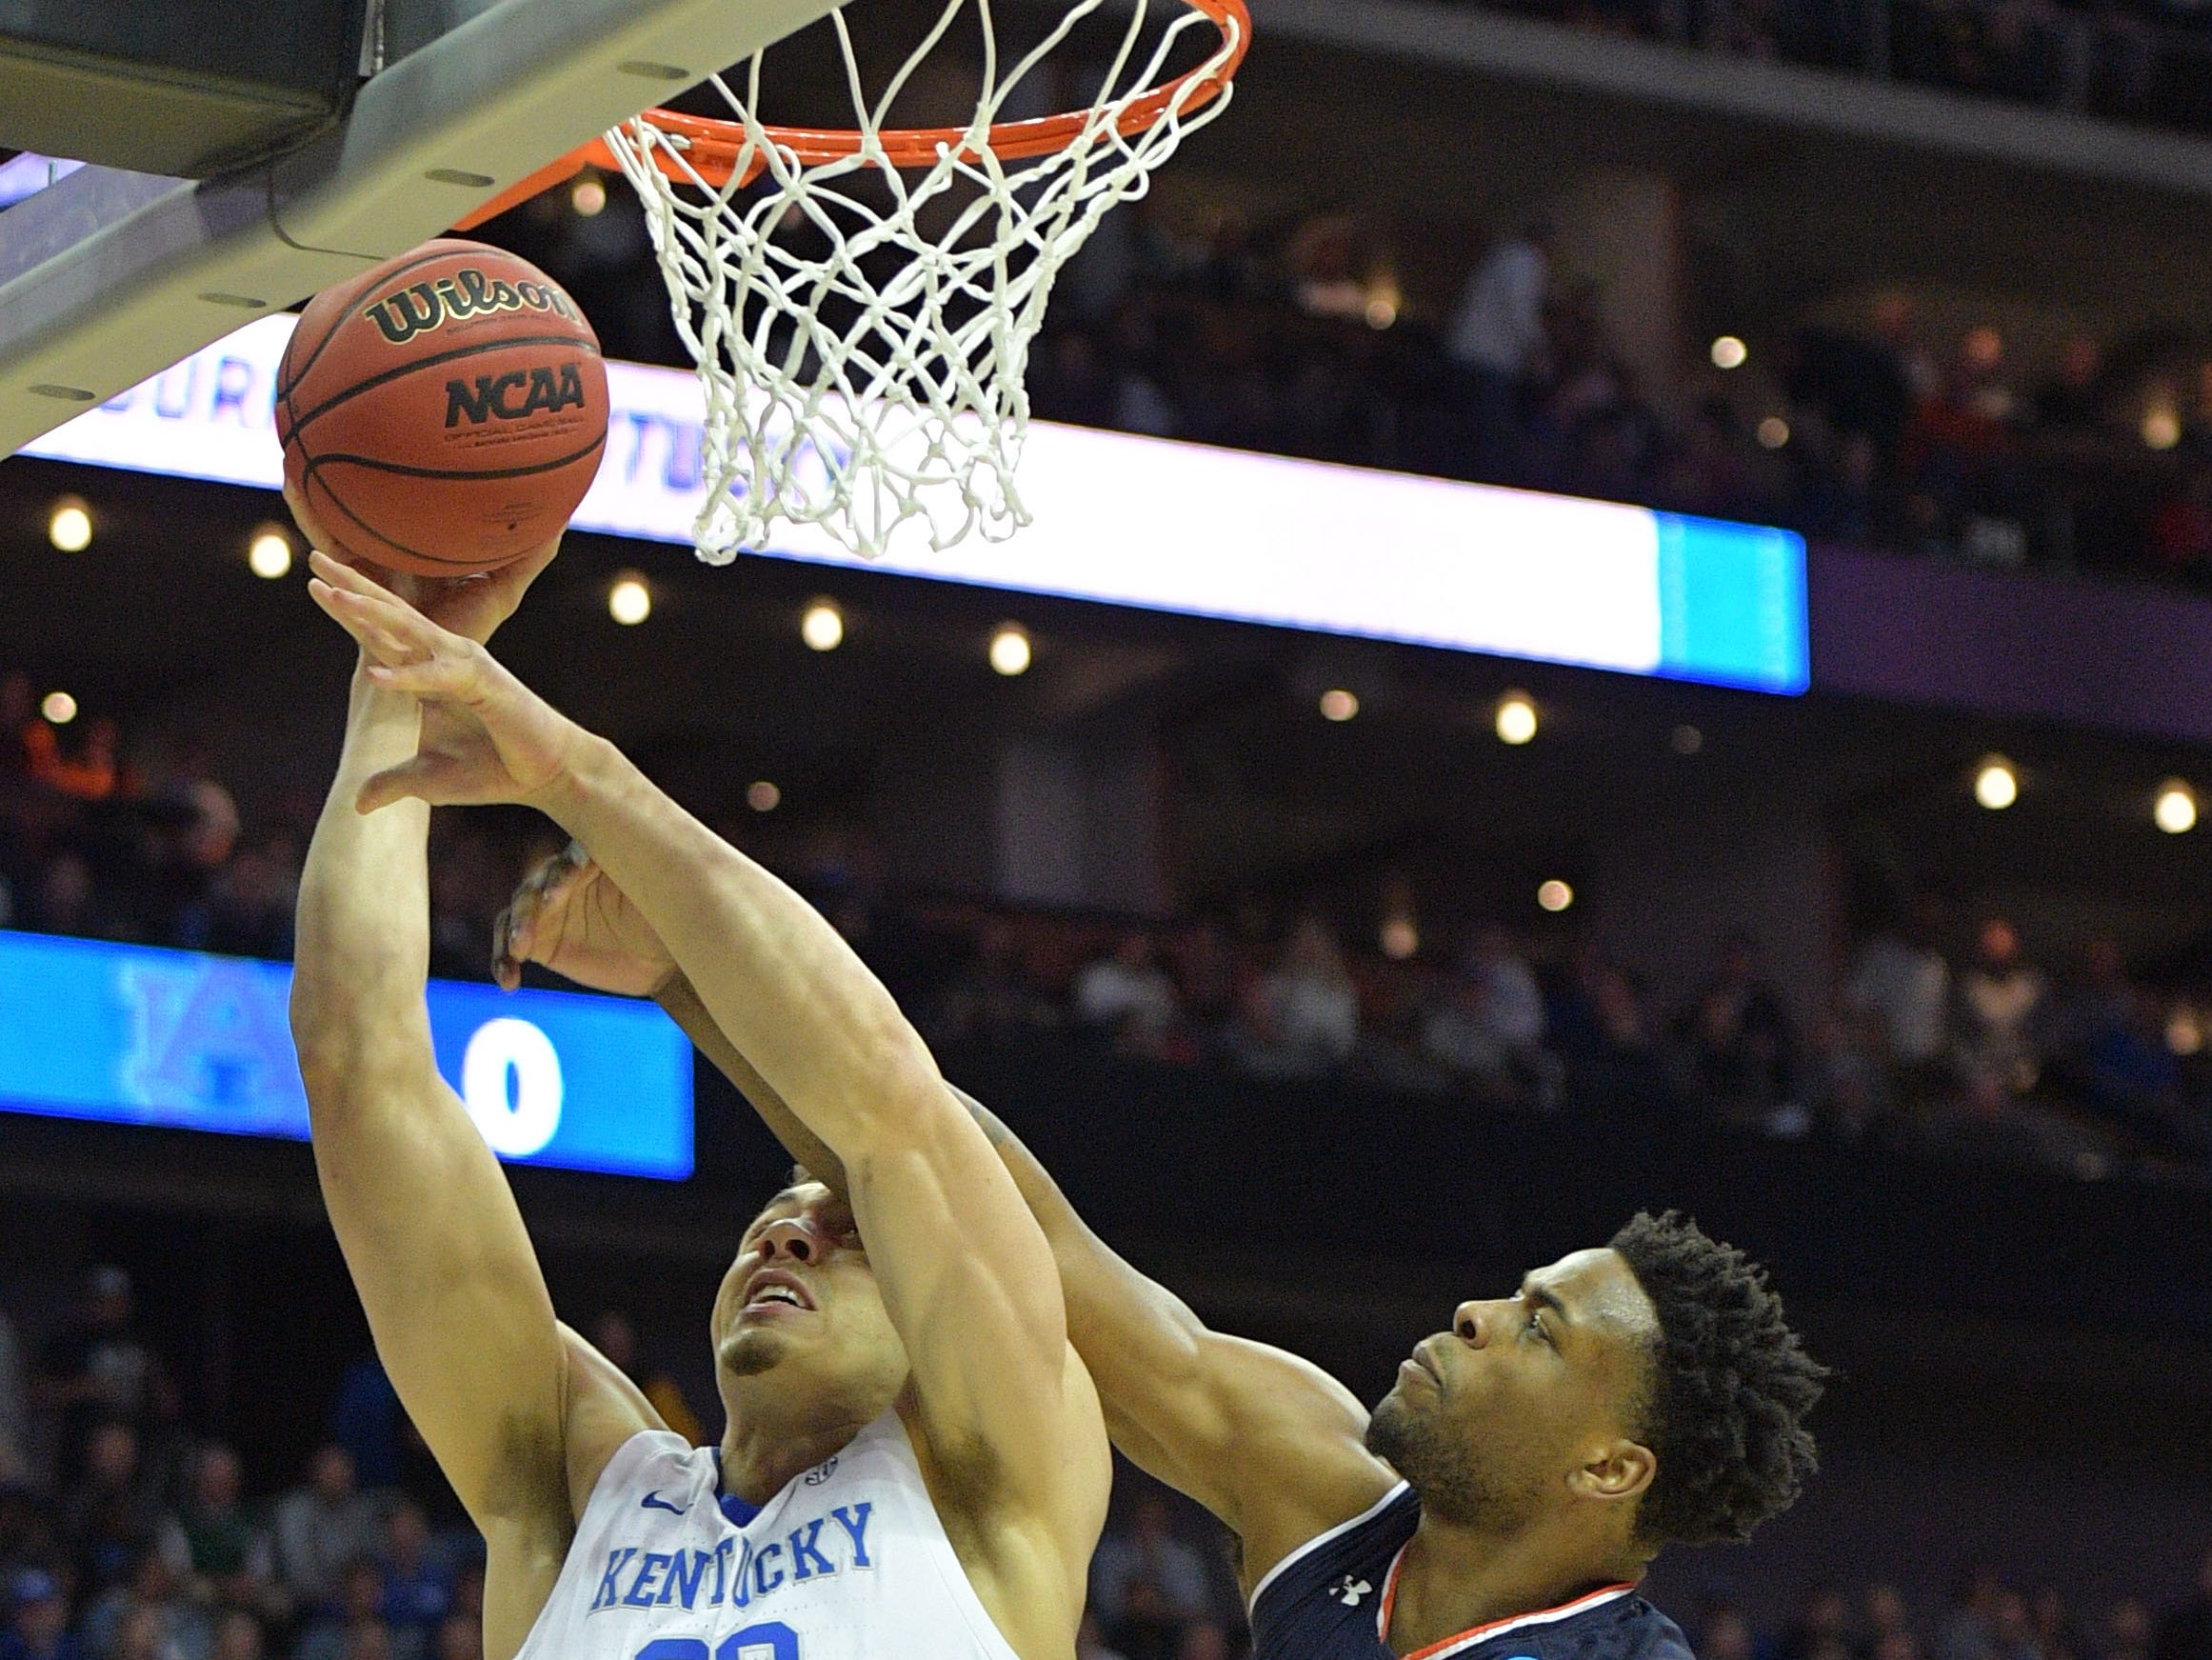 Mar 31, 2019; Kansas City, MO, United States; Kentucky Wildcats forward Reid Travis (22) shoots against Auburn Tigers guard Malik Dunbar (4) during the first half in the championship game of the midwest regional of the 2019 NCAA Tournament at Sprint Center. Mandatory Credit: Denny Medley-USA TODAY Sports